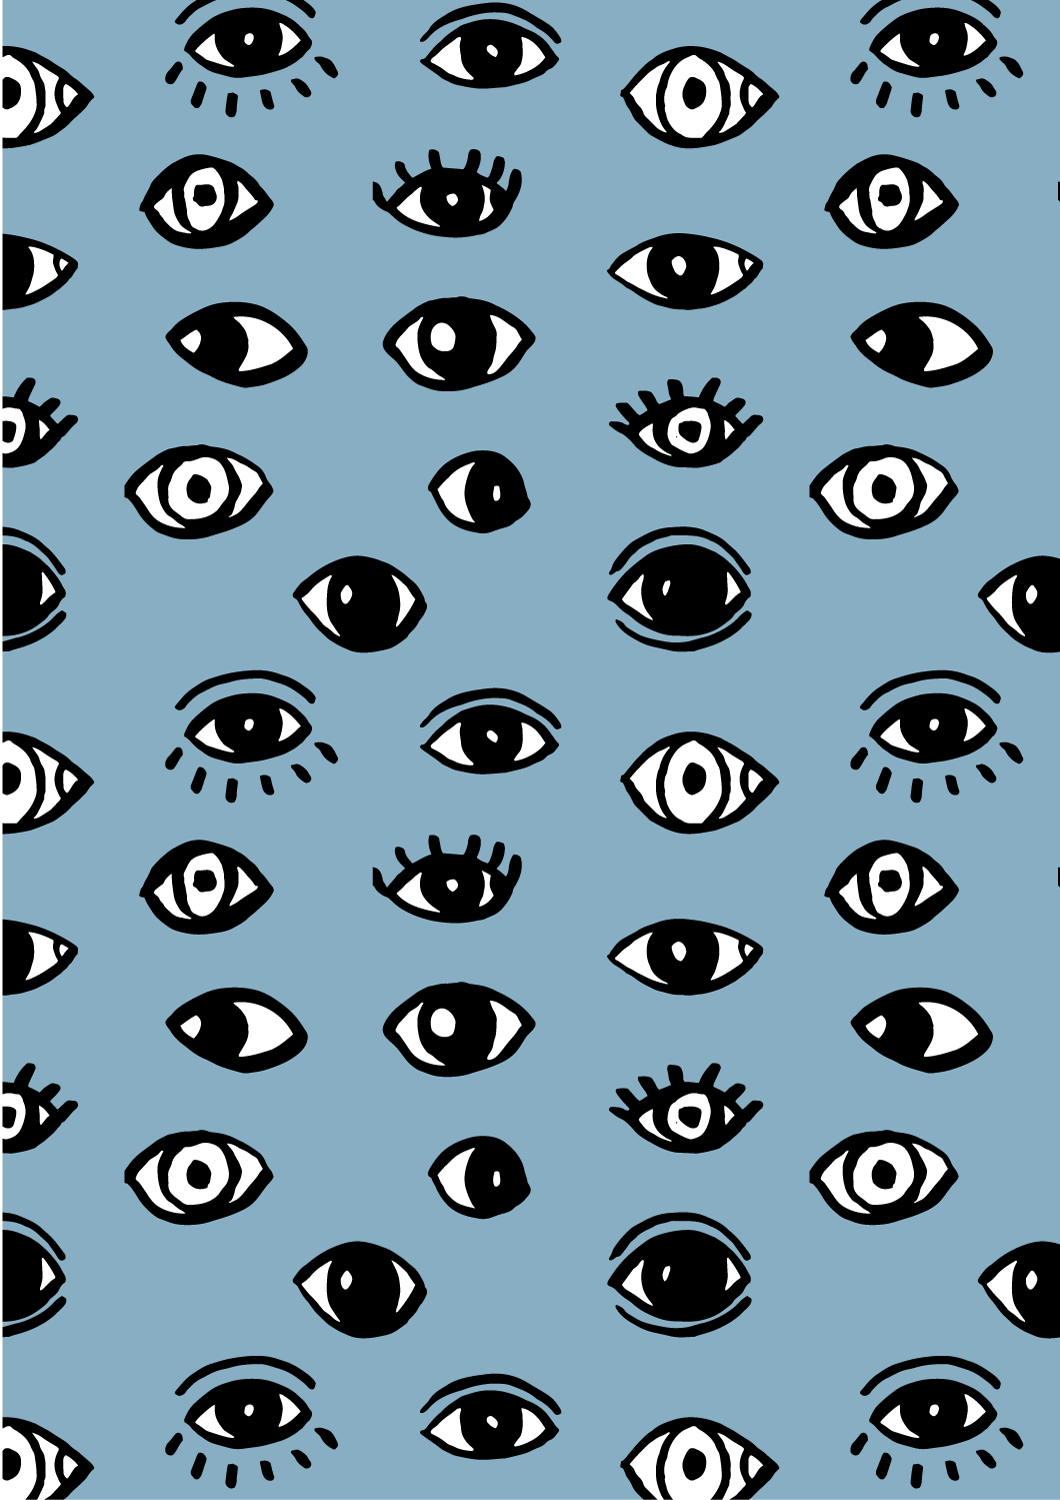 eyespattern.png